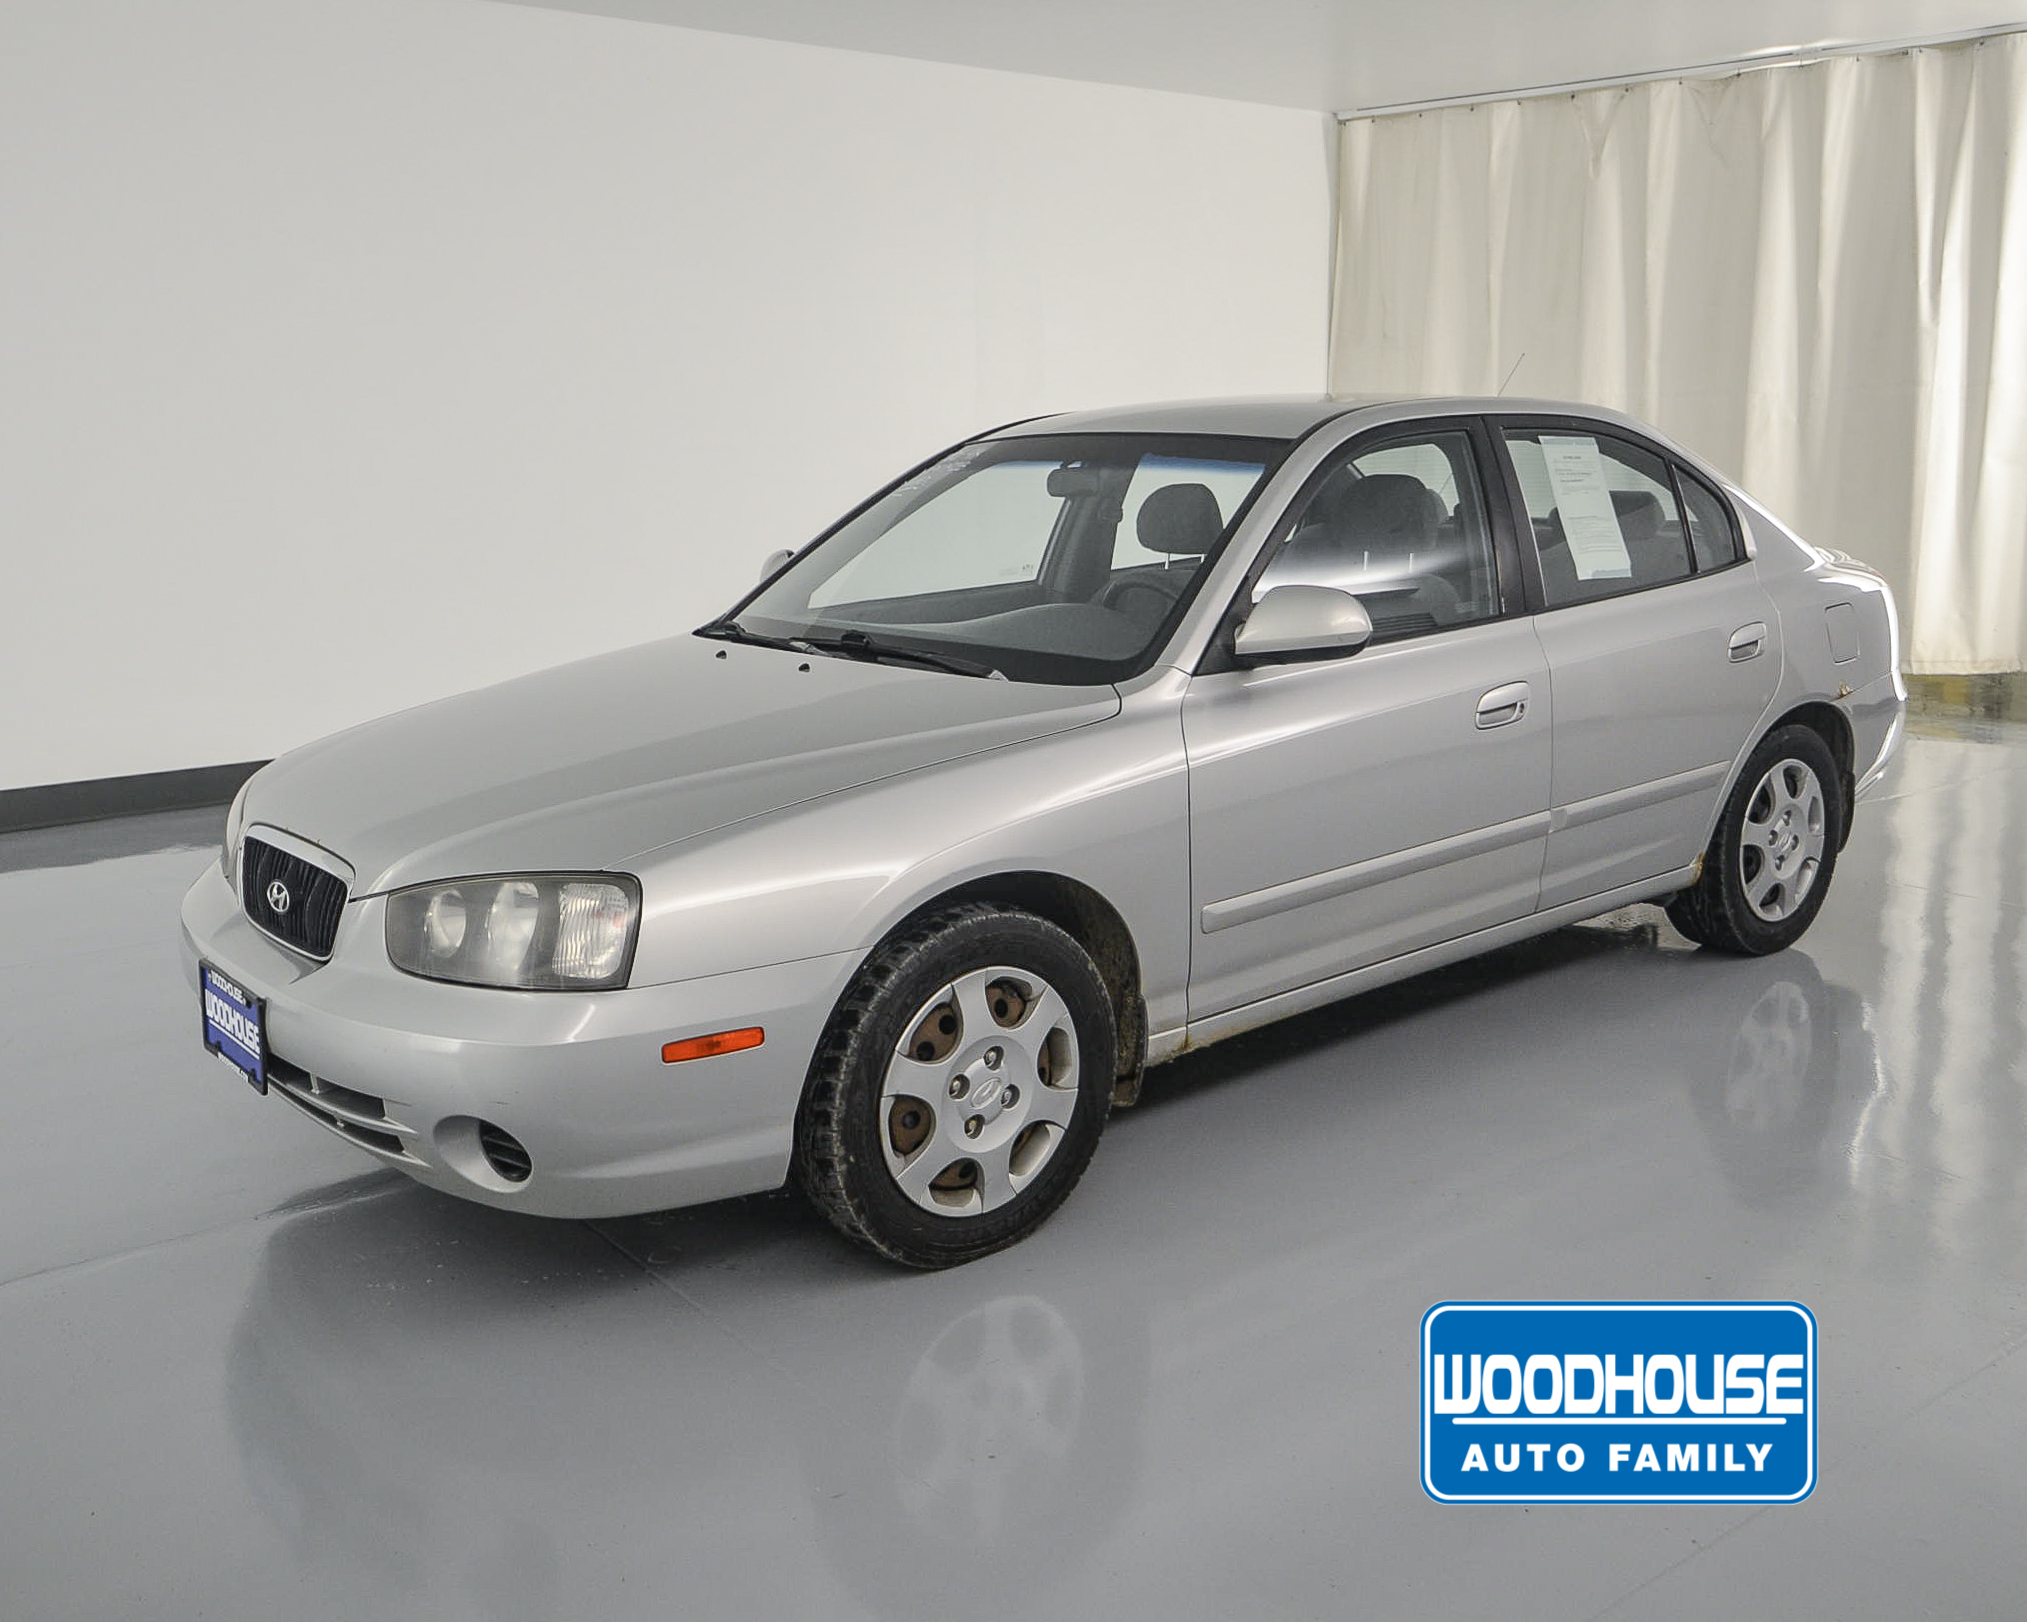 woodhouse used 2002 hyundai elantra for sale auction missouri woodhouse